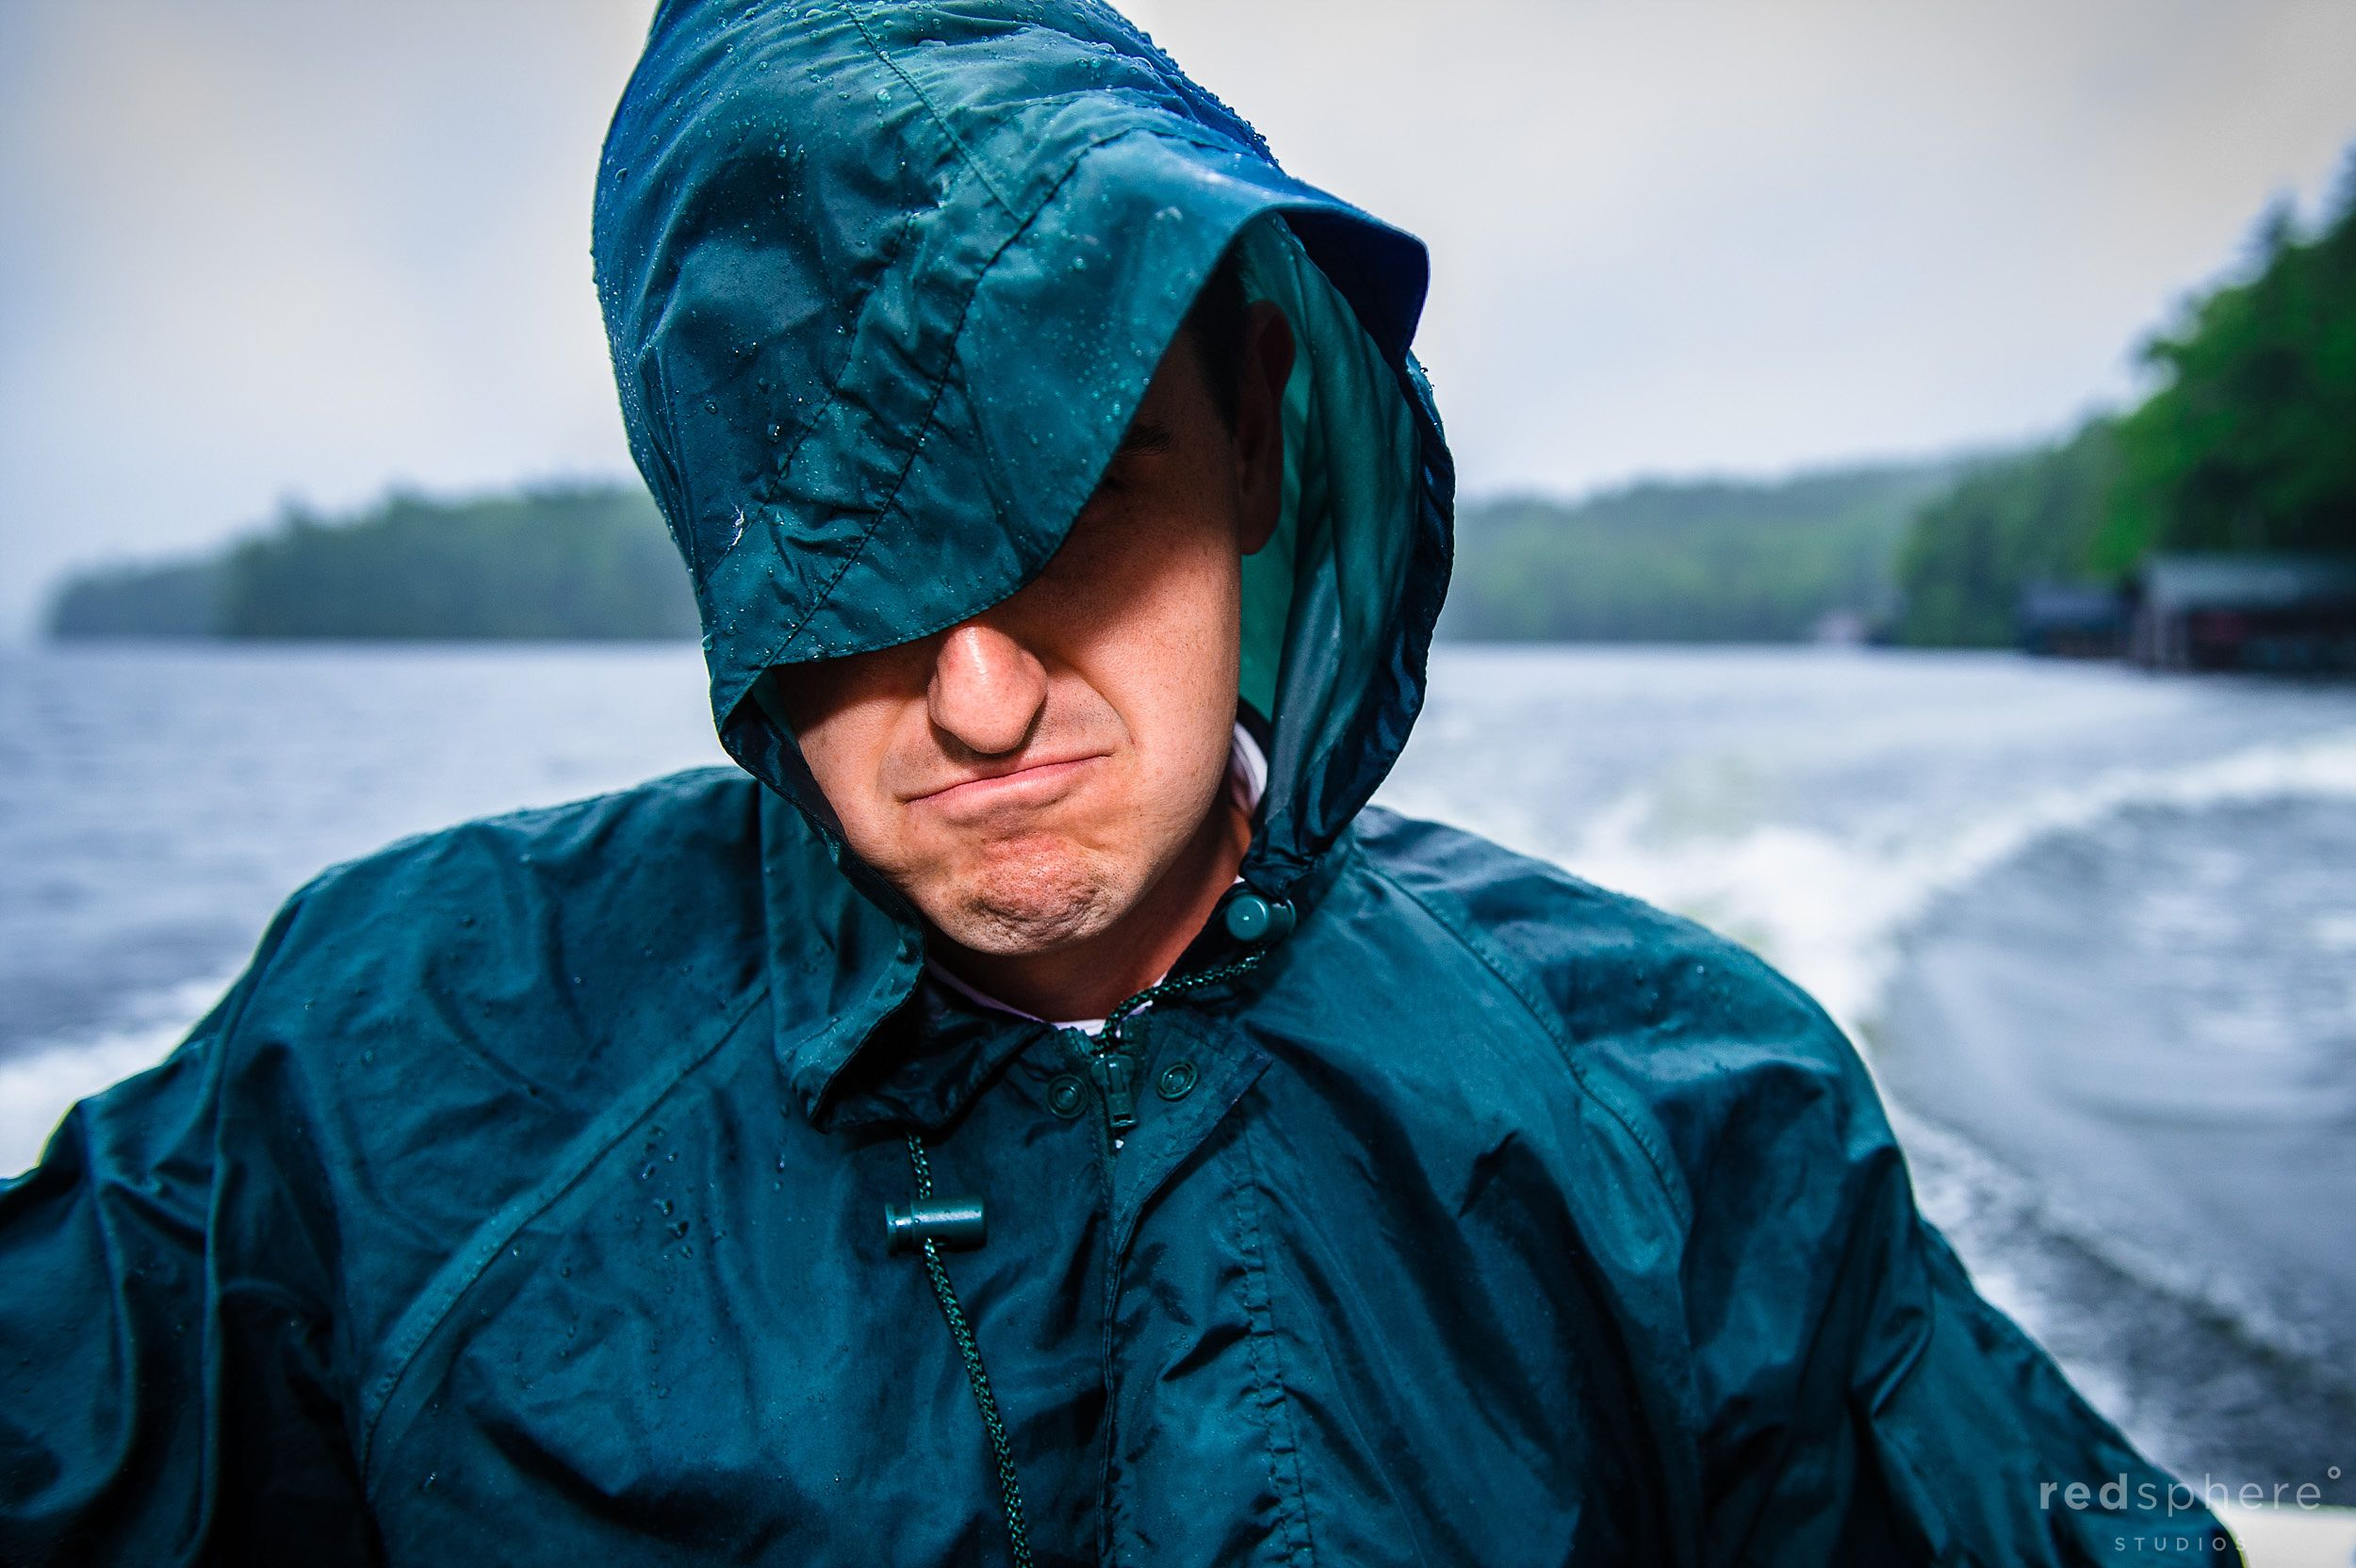 Rainy Boat Rides at Saranac Lake, New York